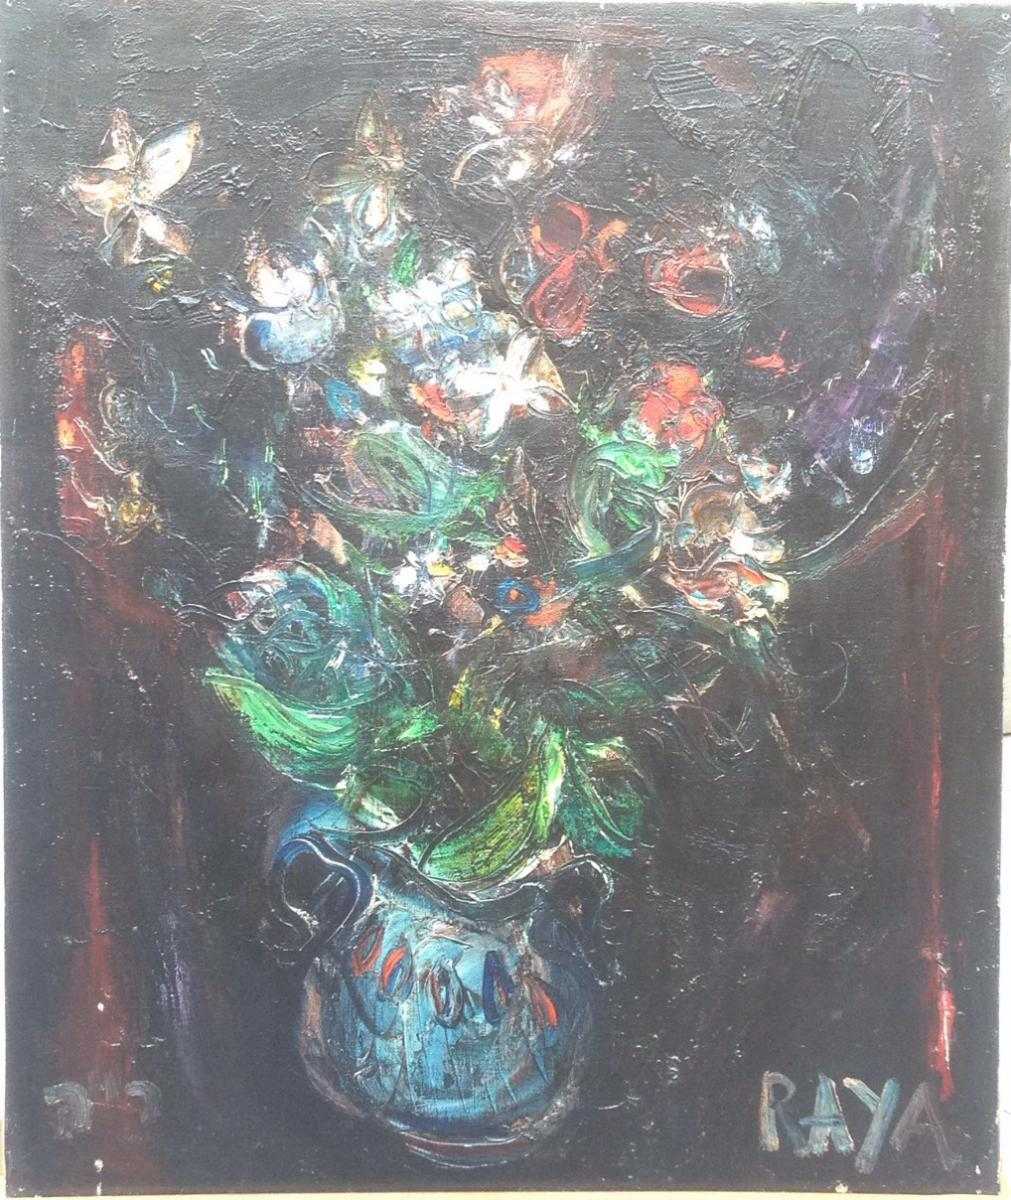 Raya Sorkine, Bouquets And Butterflies, Oil On Canvas, 1981